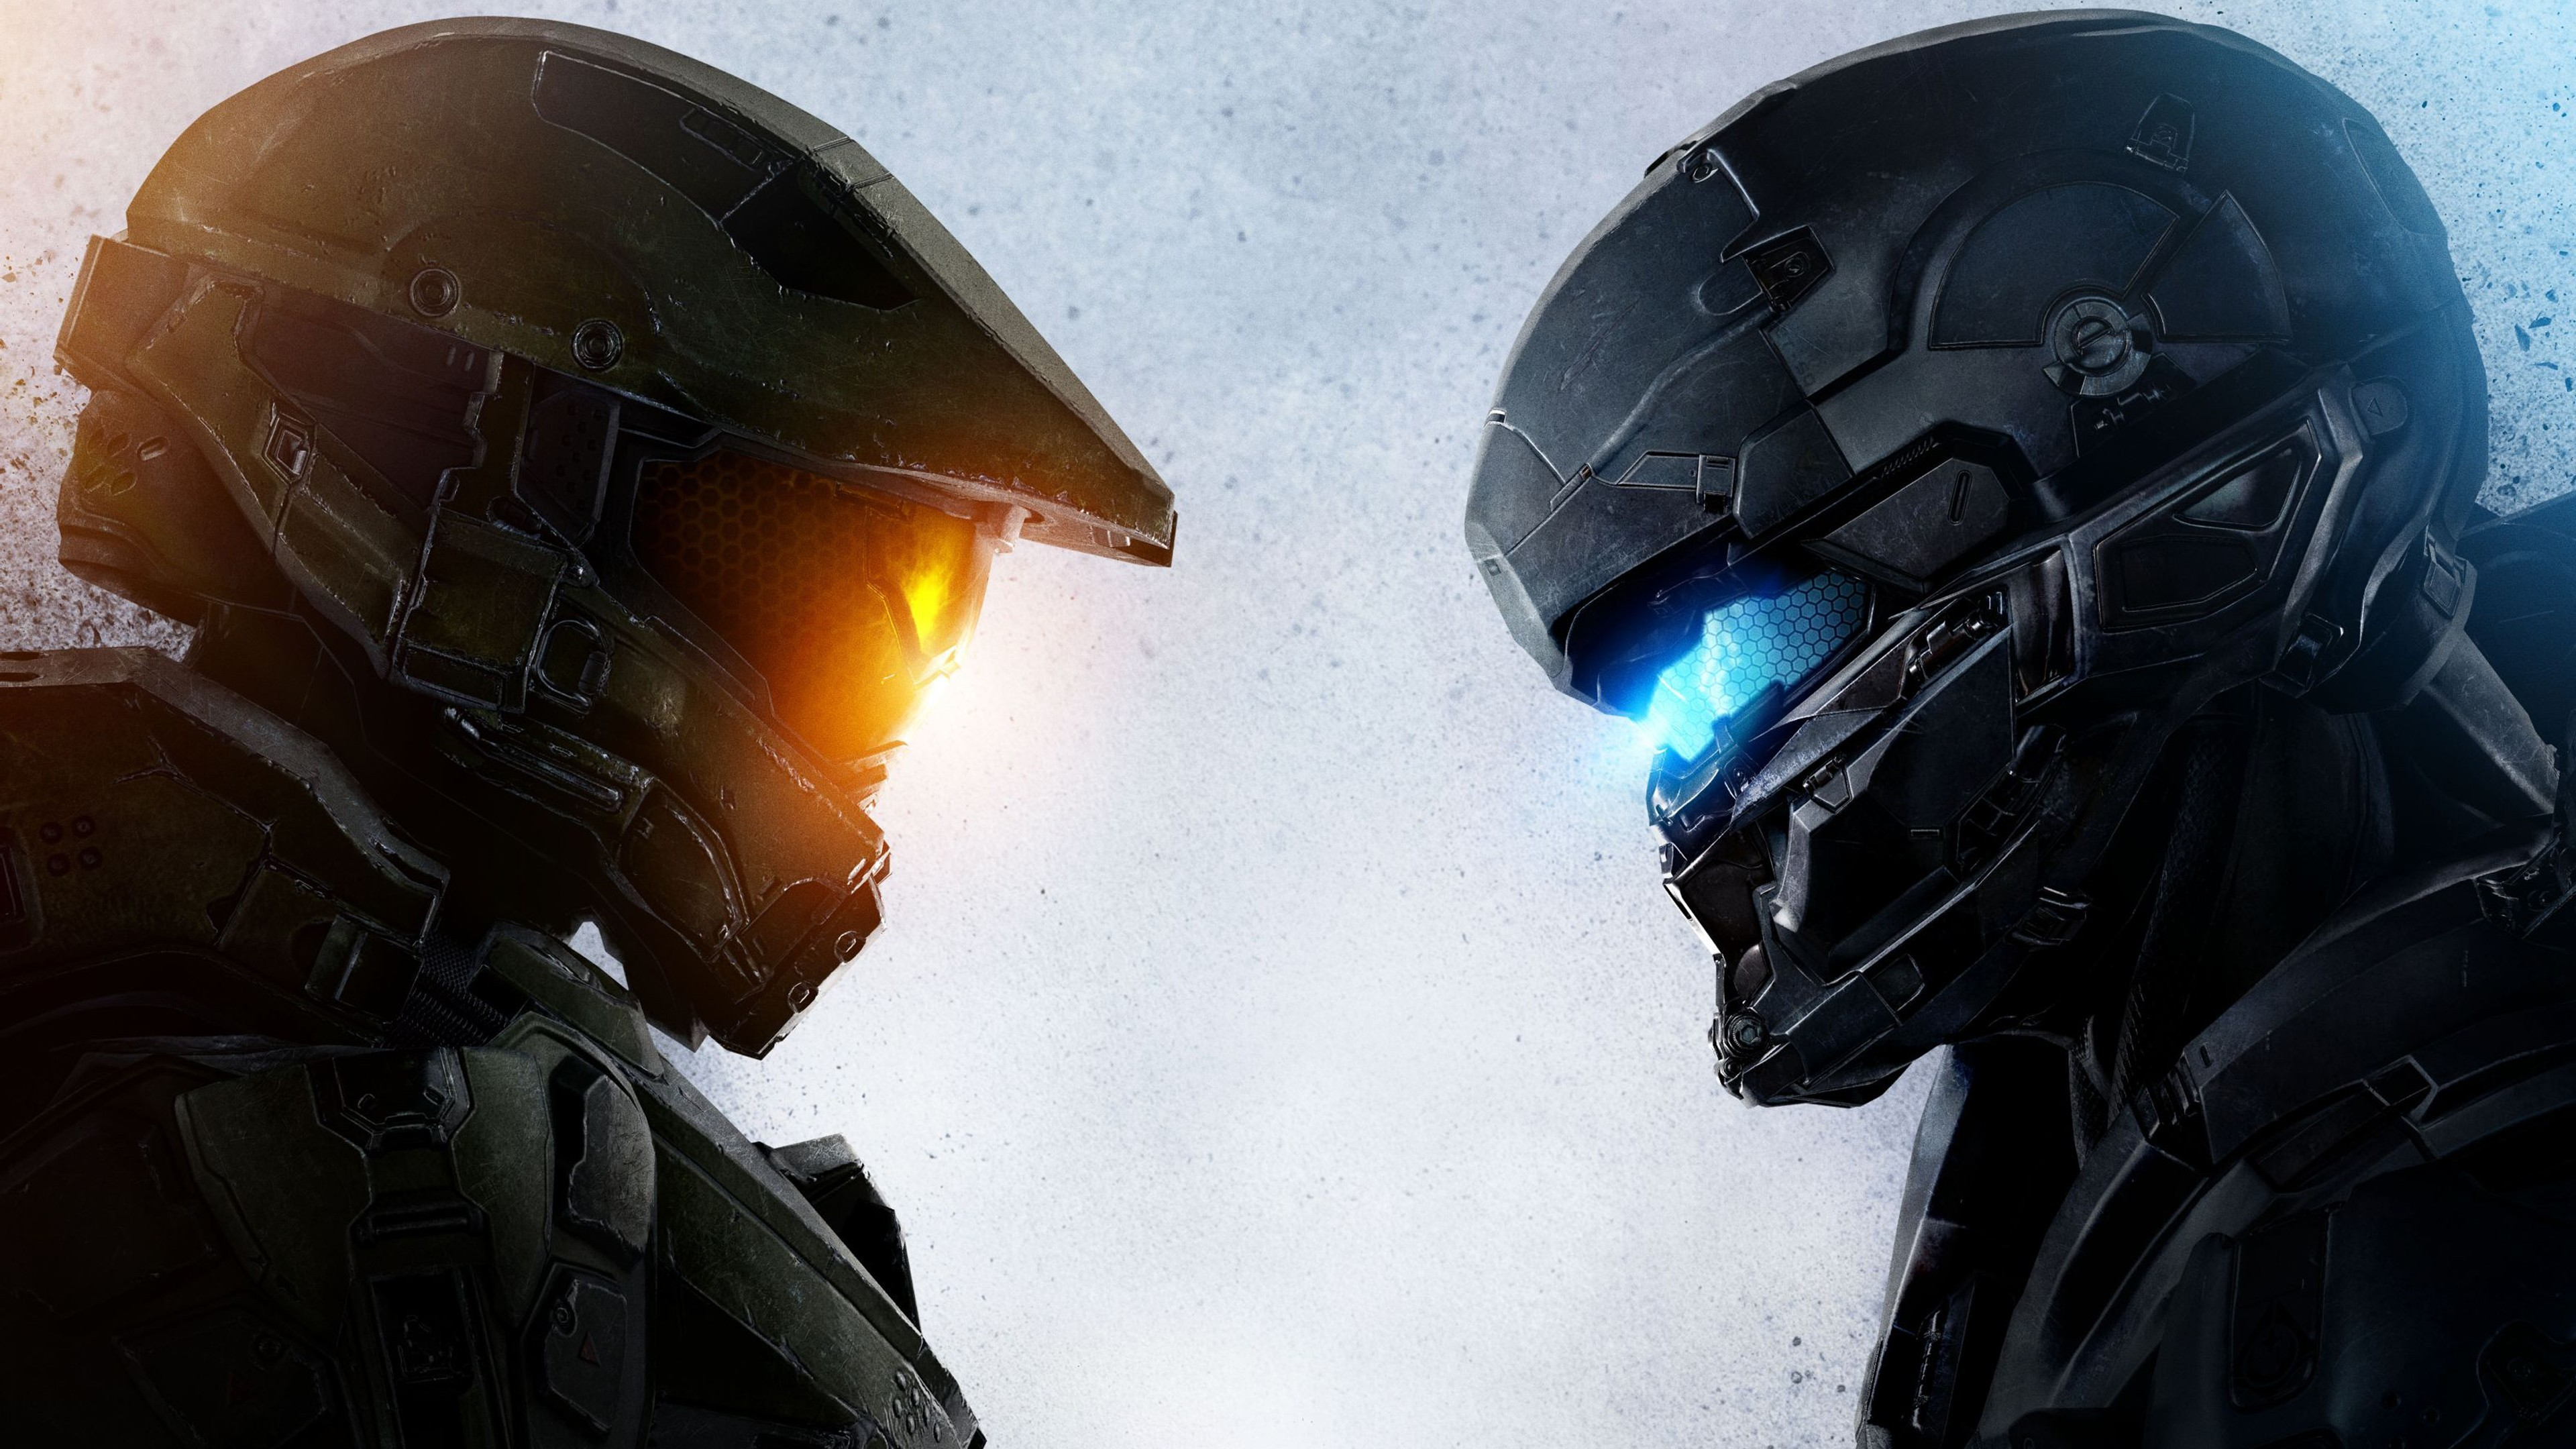 halo 5 master chief wallpaper free hd hd wallpapers cool images high  definition amazing smart phones